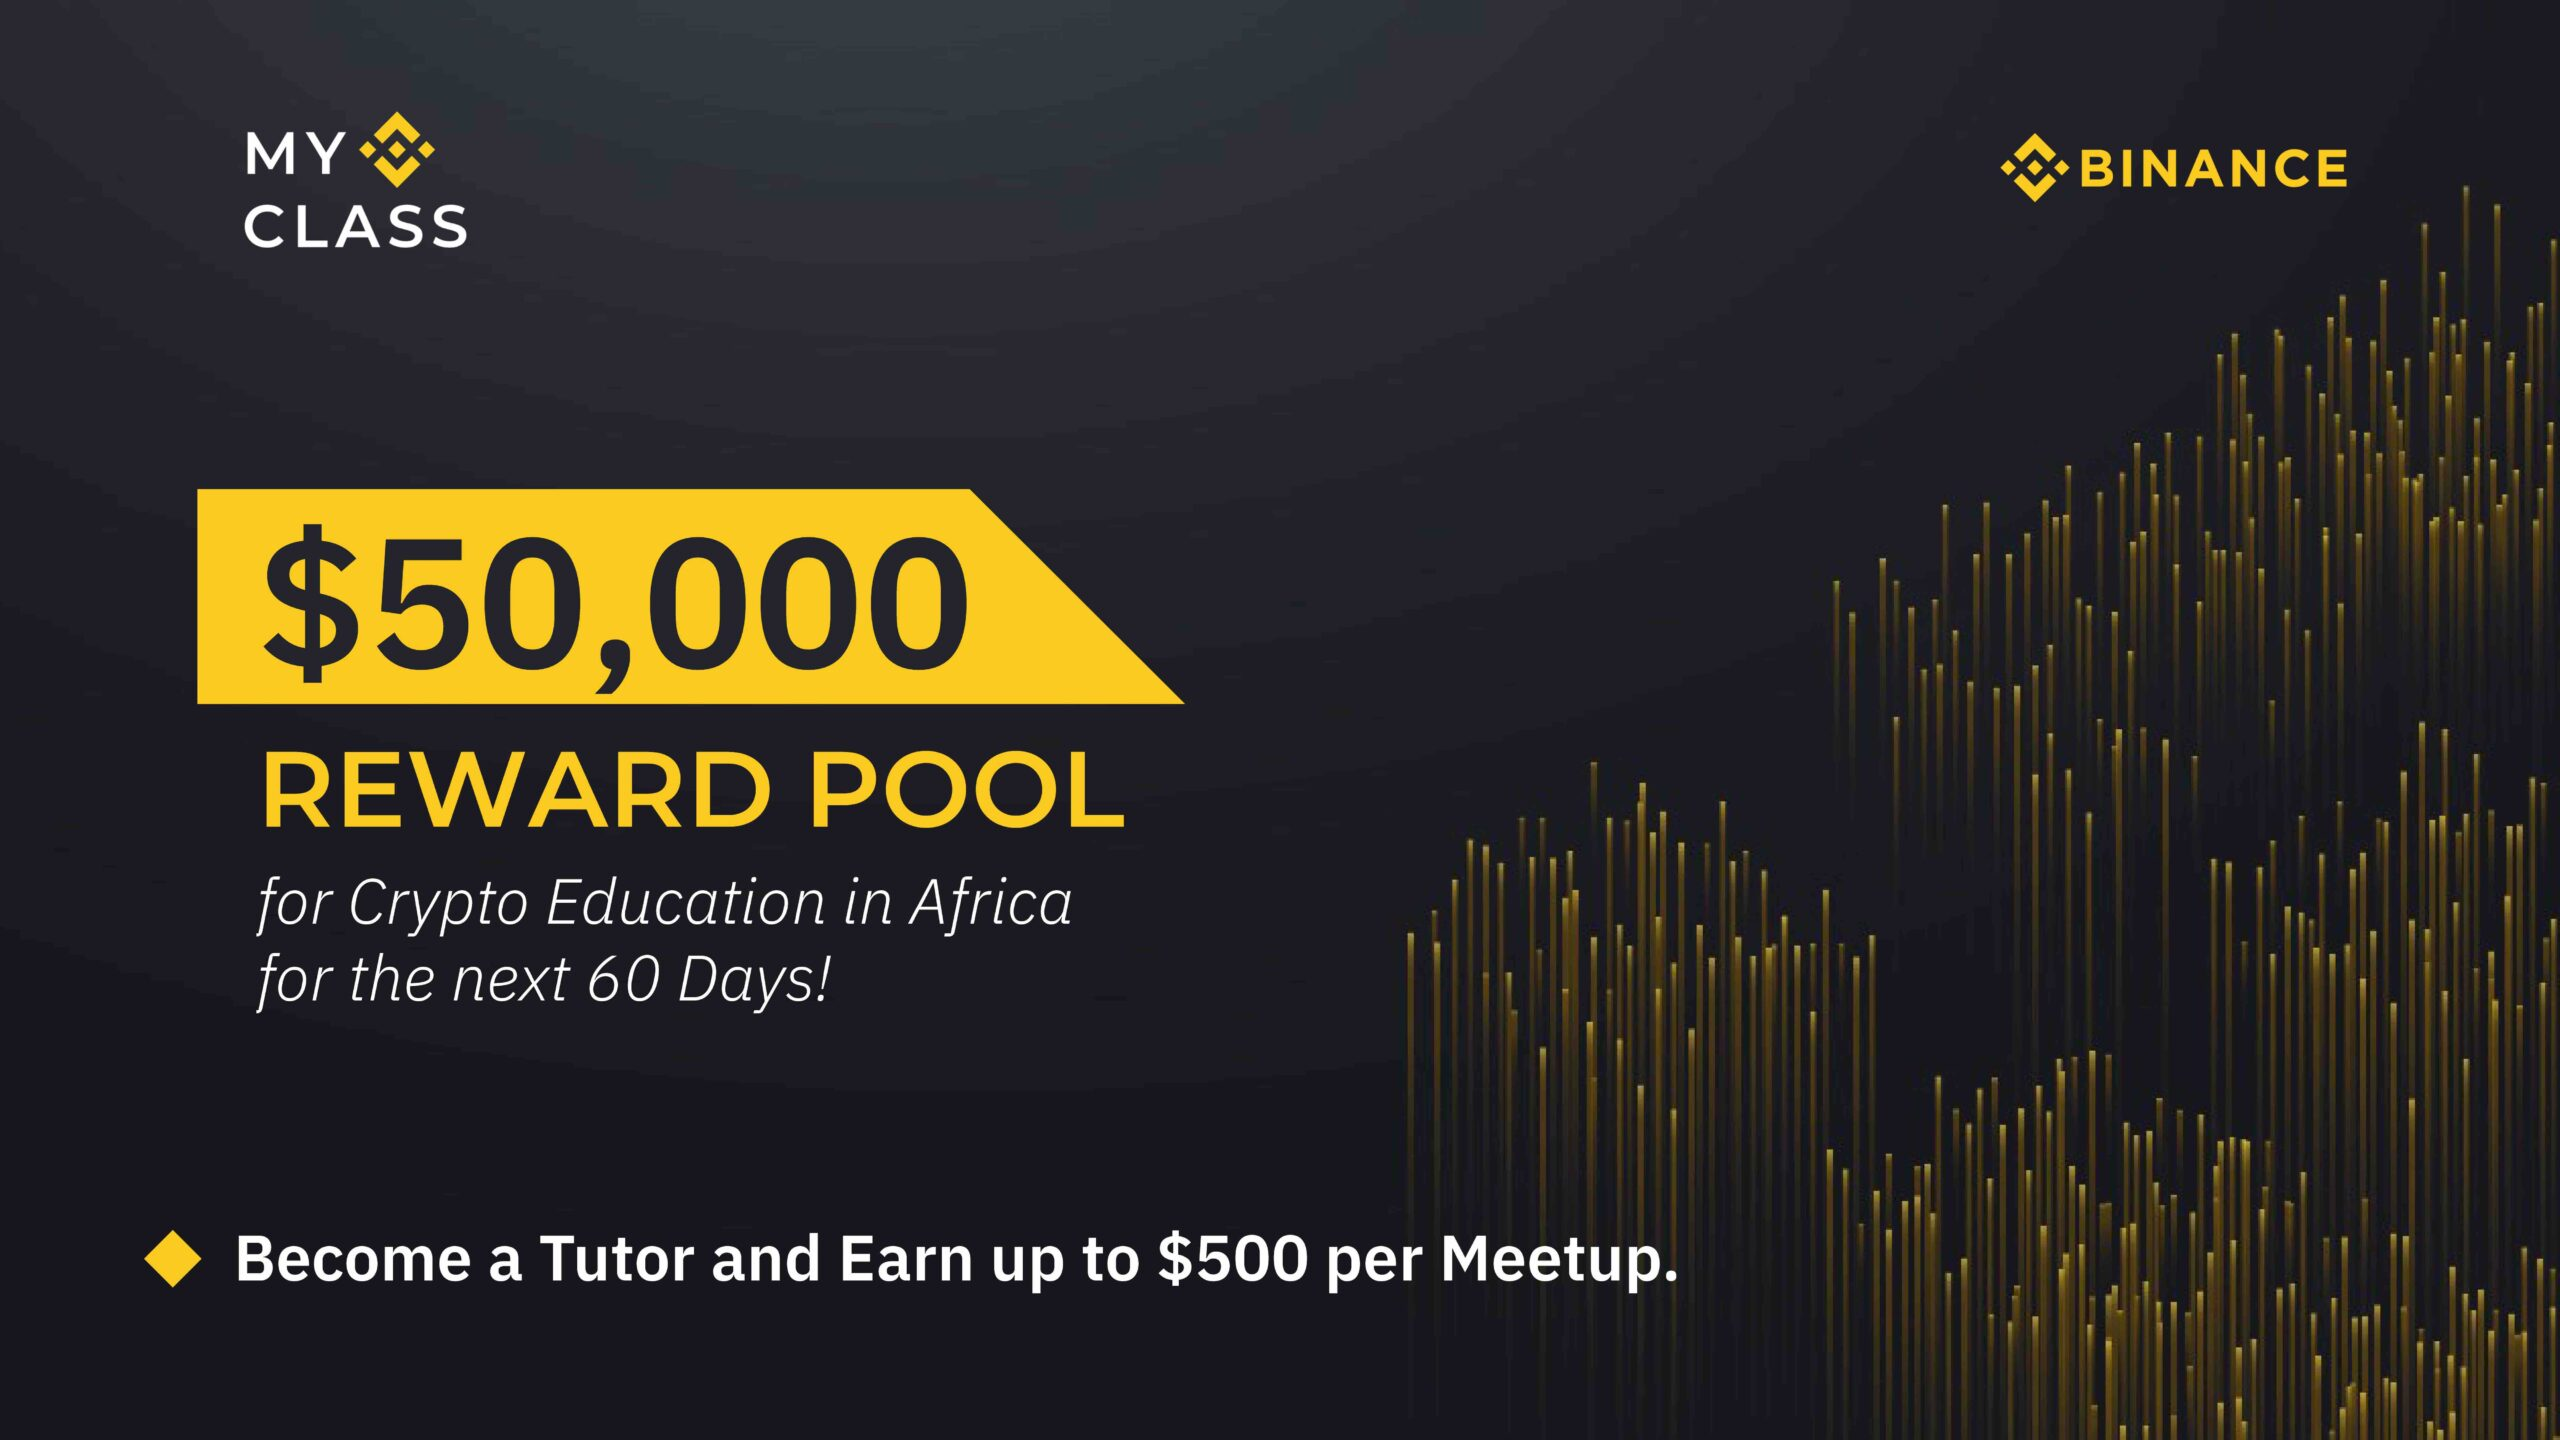 Earn up to $500 as a Crypto Educator in the #MyBinanceClass Event